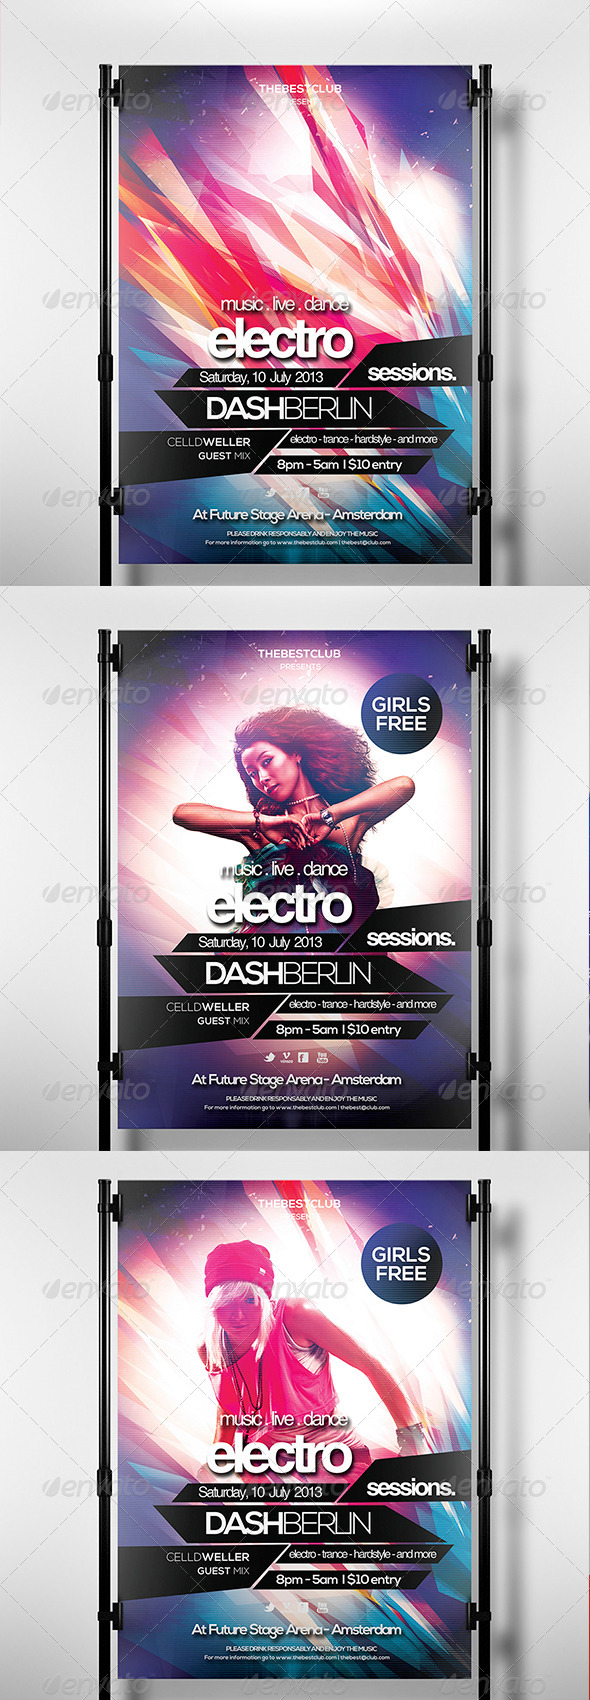 Electro Sessions 3 Flyer Template - Clubs & Parties Events